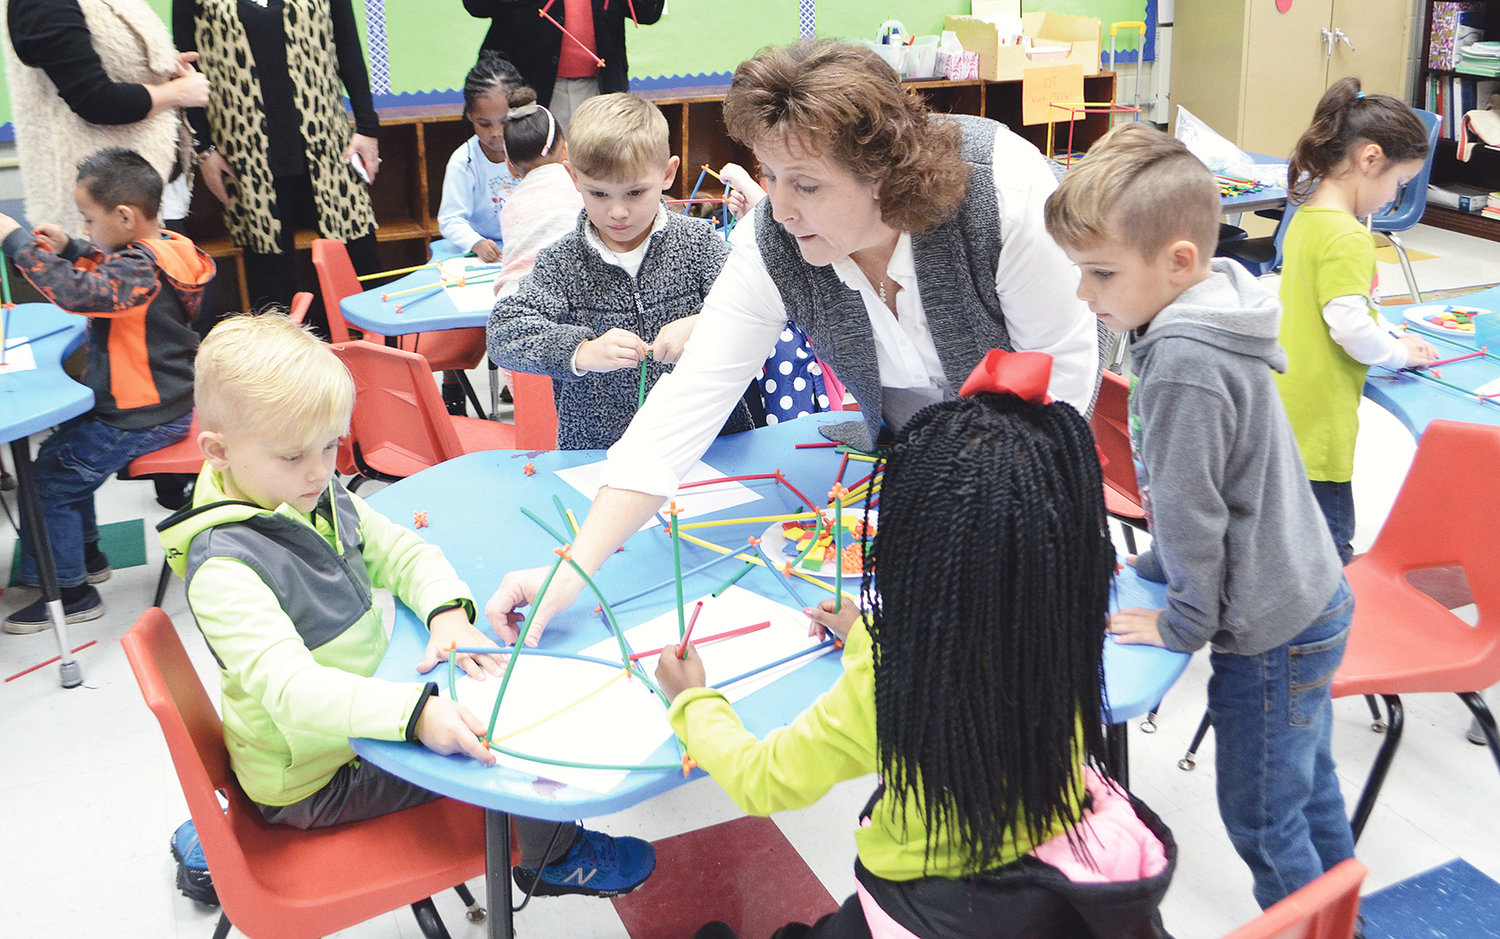 Volunteer teacher Vicki Howard helps students with a STEM project at T.R. Simmons Elementary.